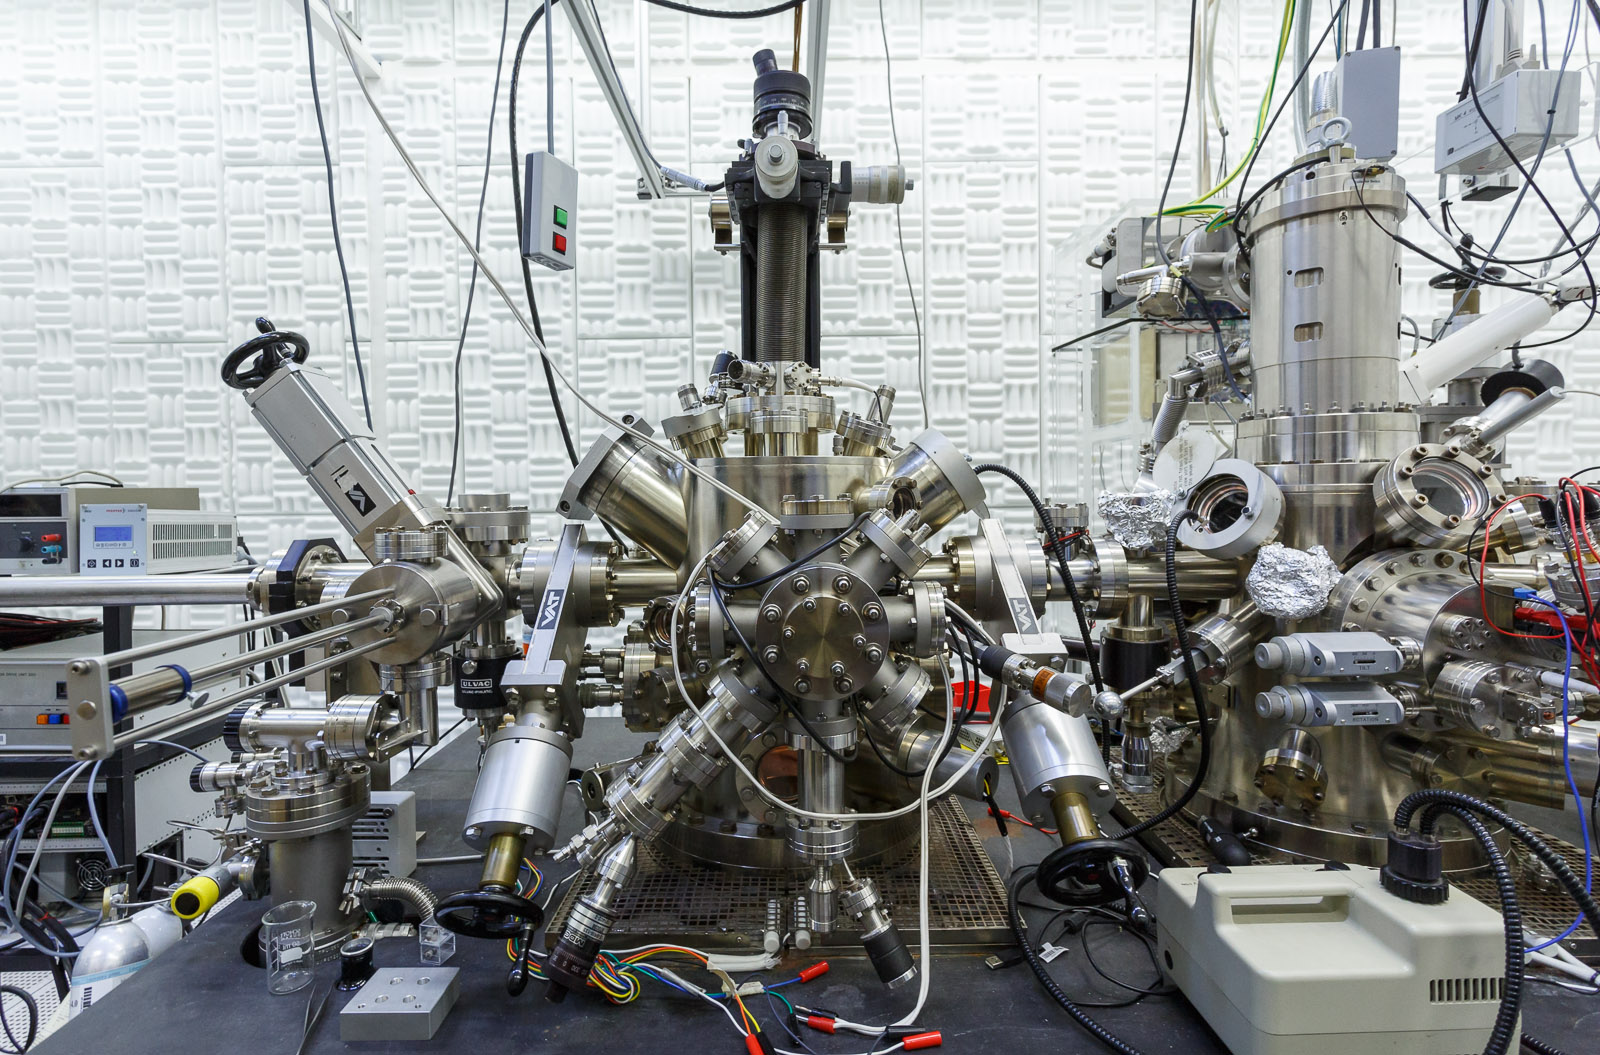 One super-precise instrument in IBM's noise-free rooms is this spin-polarized scanning electron microscope, which can be used to gauge the exact details about magnetic materials. Samples that researchers investigate are placed inside a chamber with a vacu